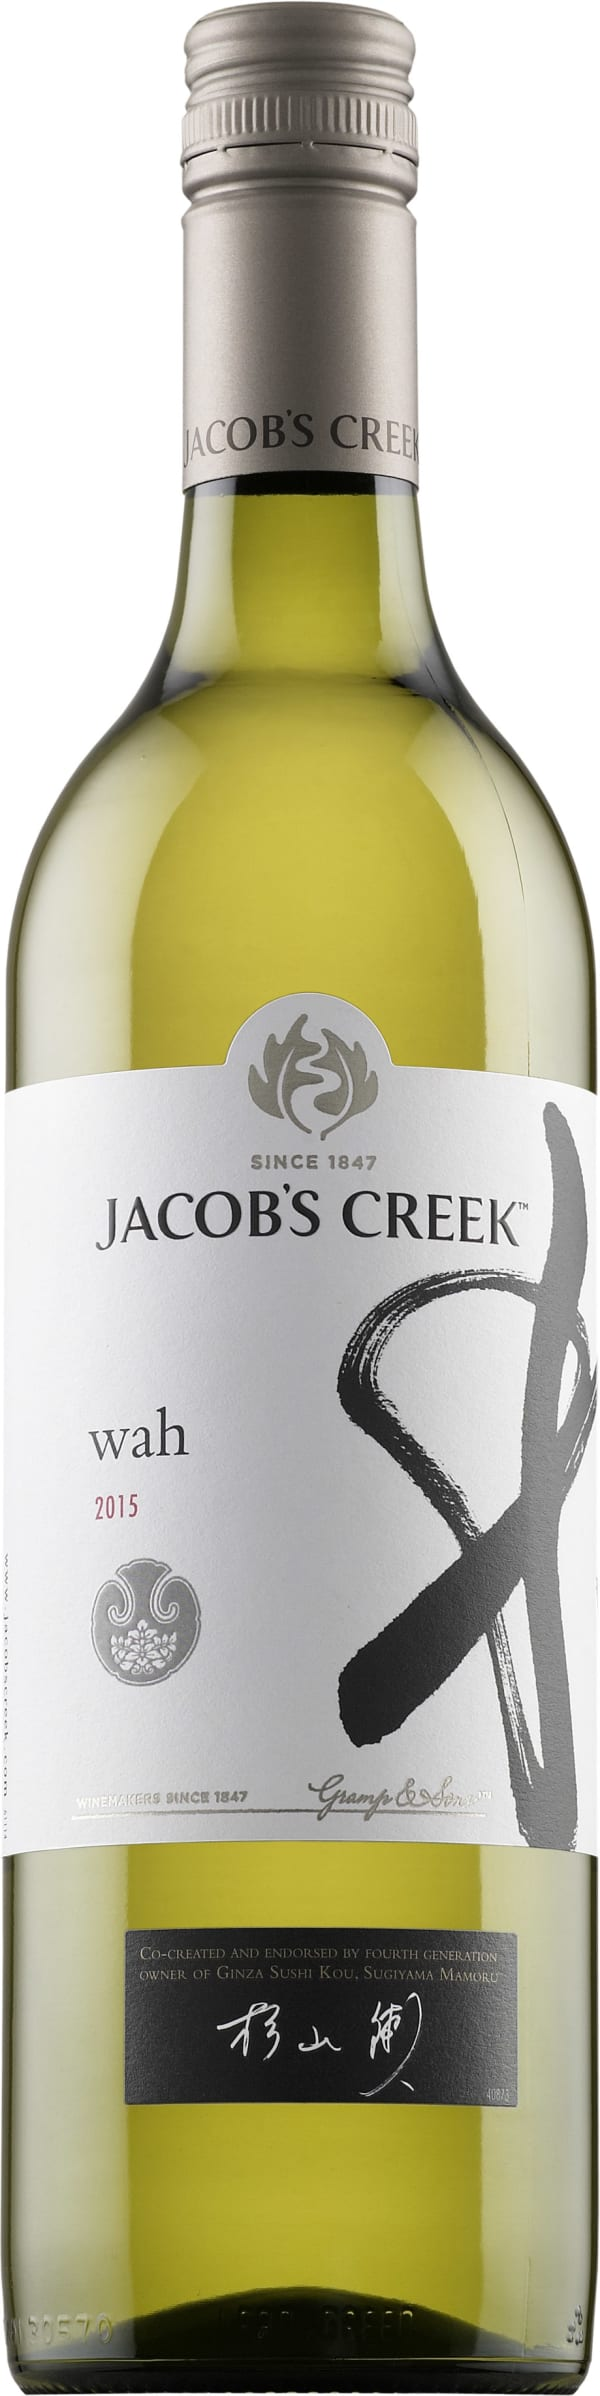 Jacob's Creek Wah 2016